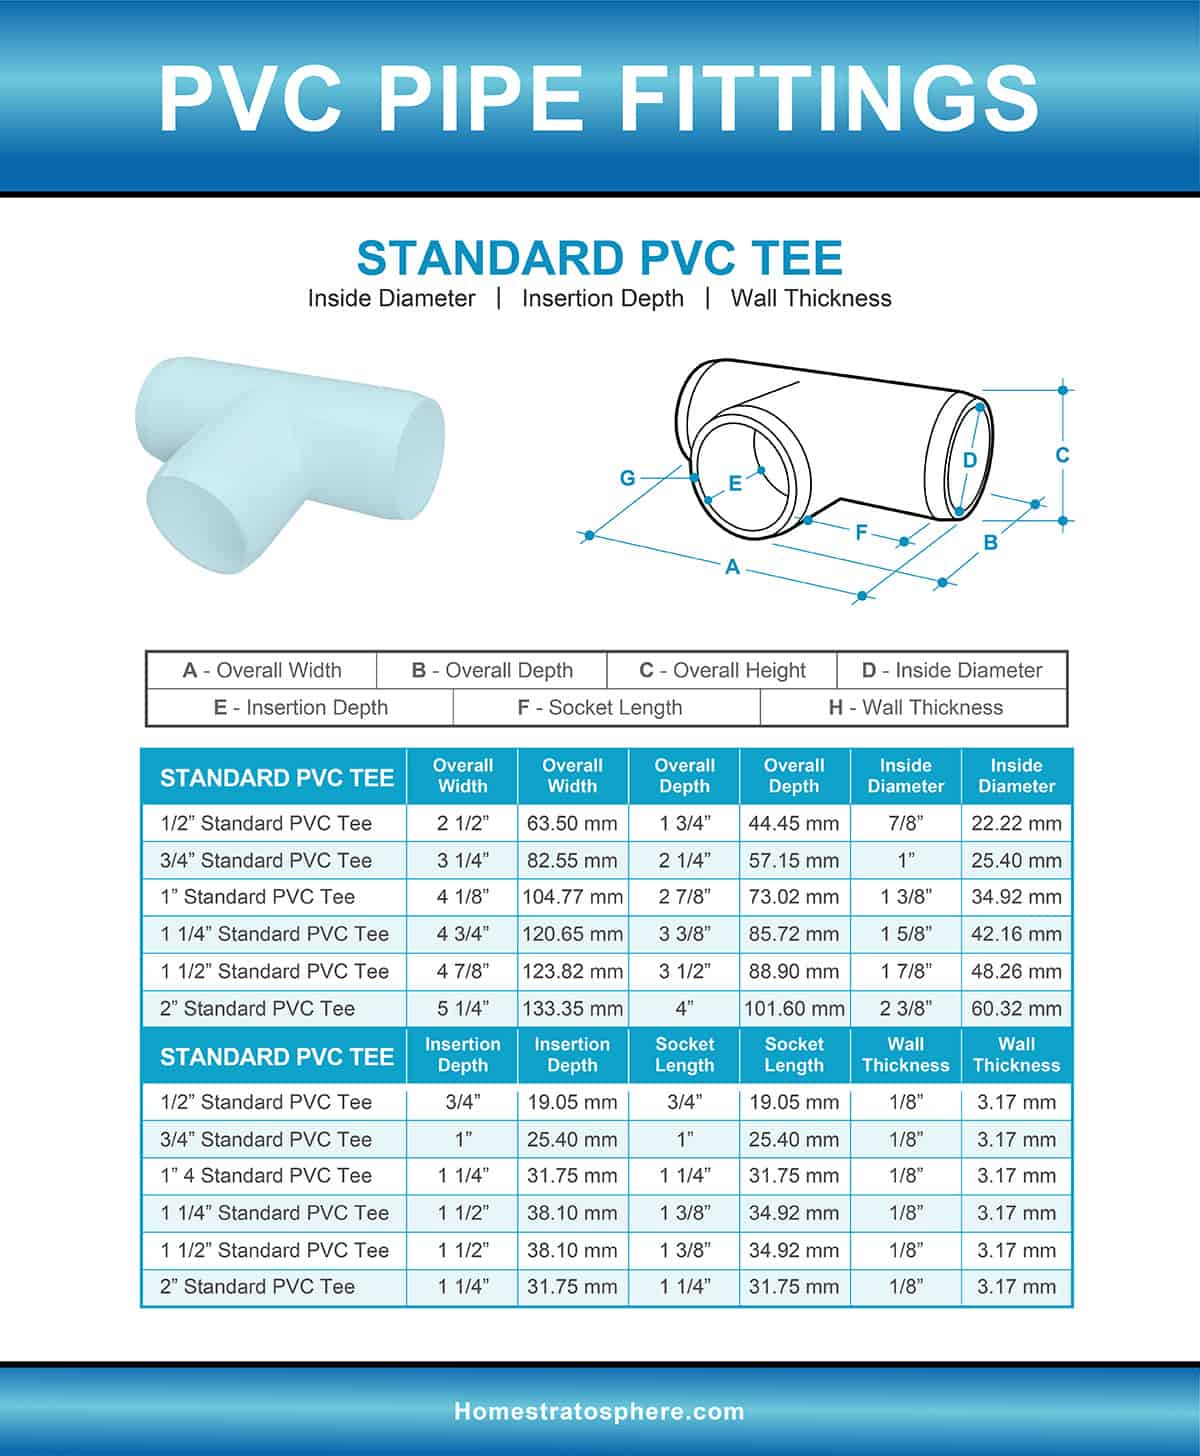 Standard PVC Tee Fitting Diagram and Dimensions Chart